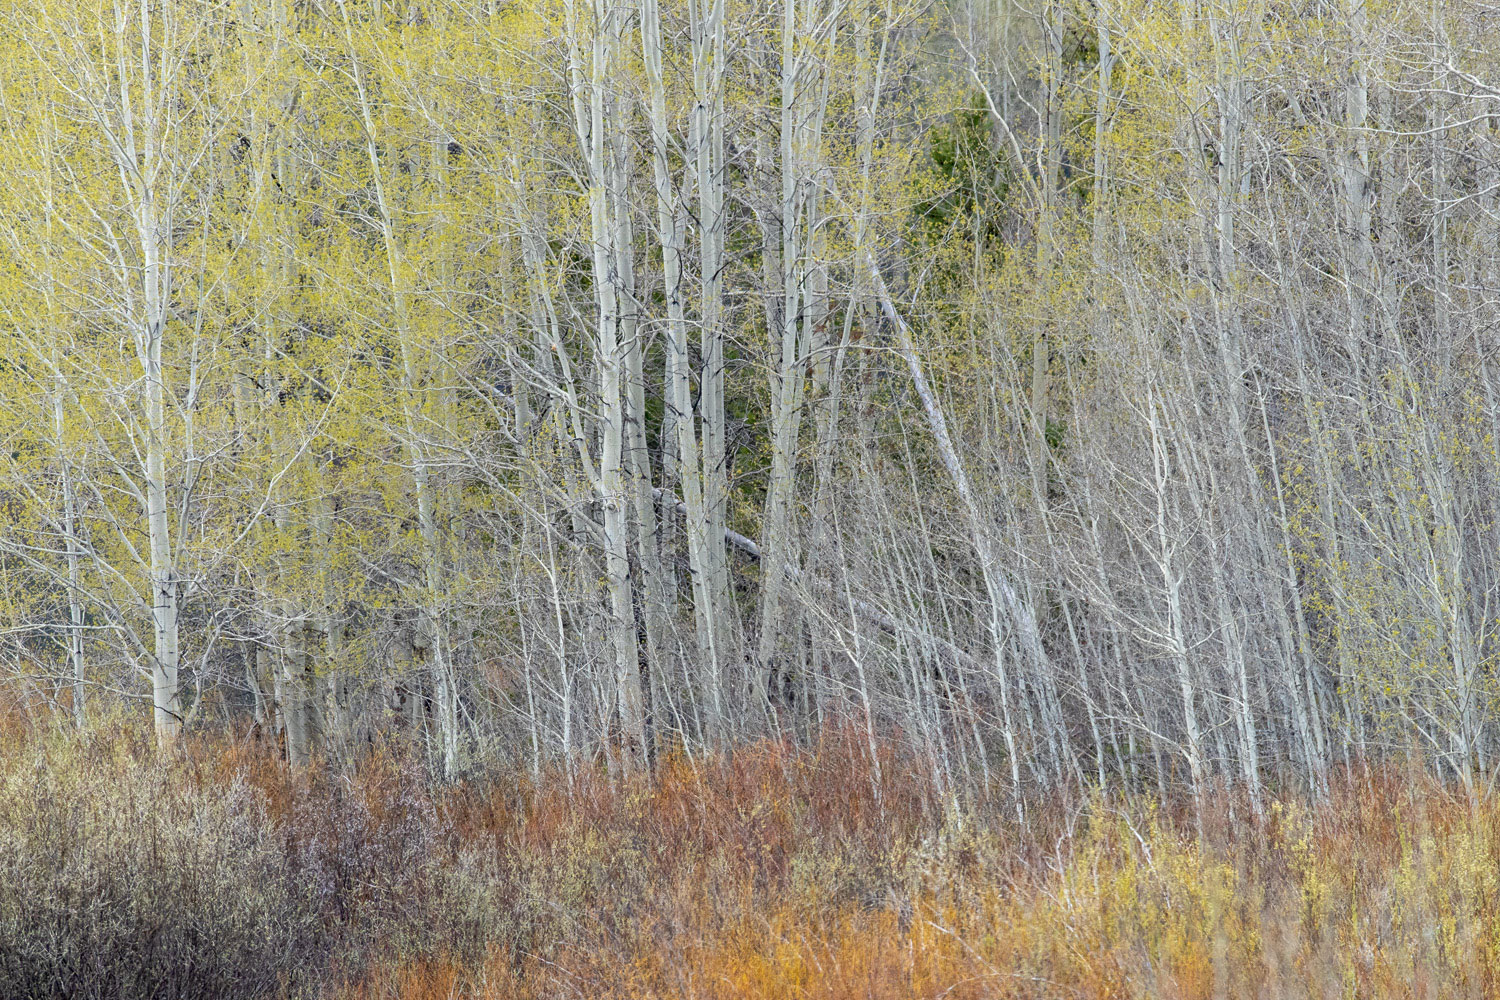 abstract, spring, trees, aspen, impression, photo